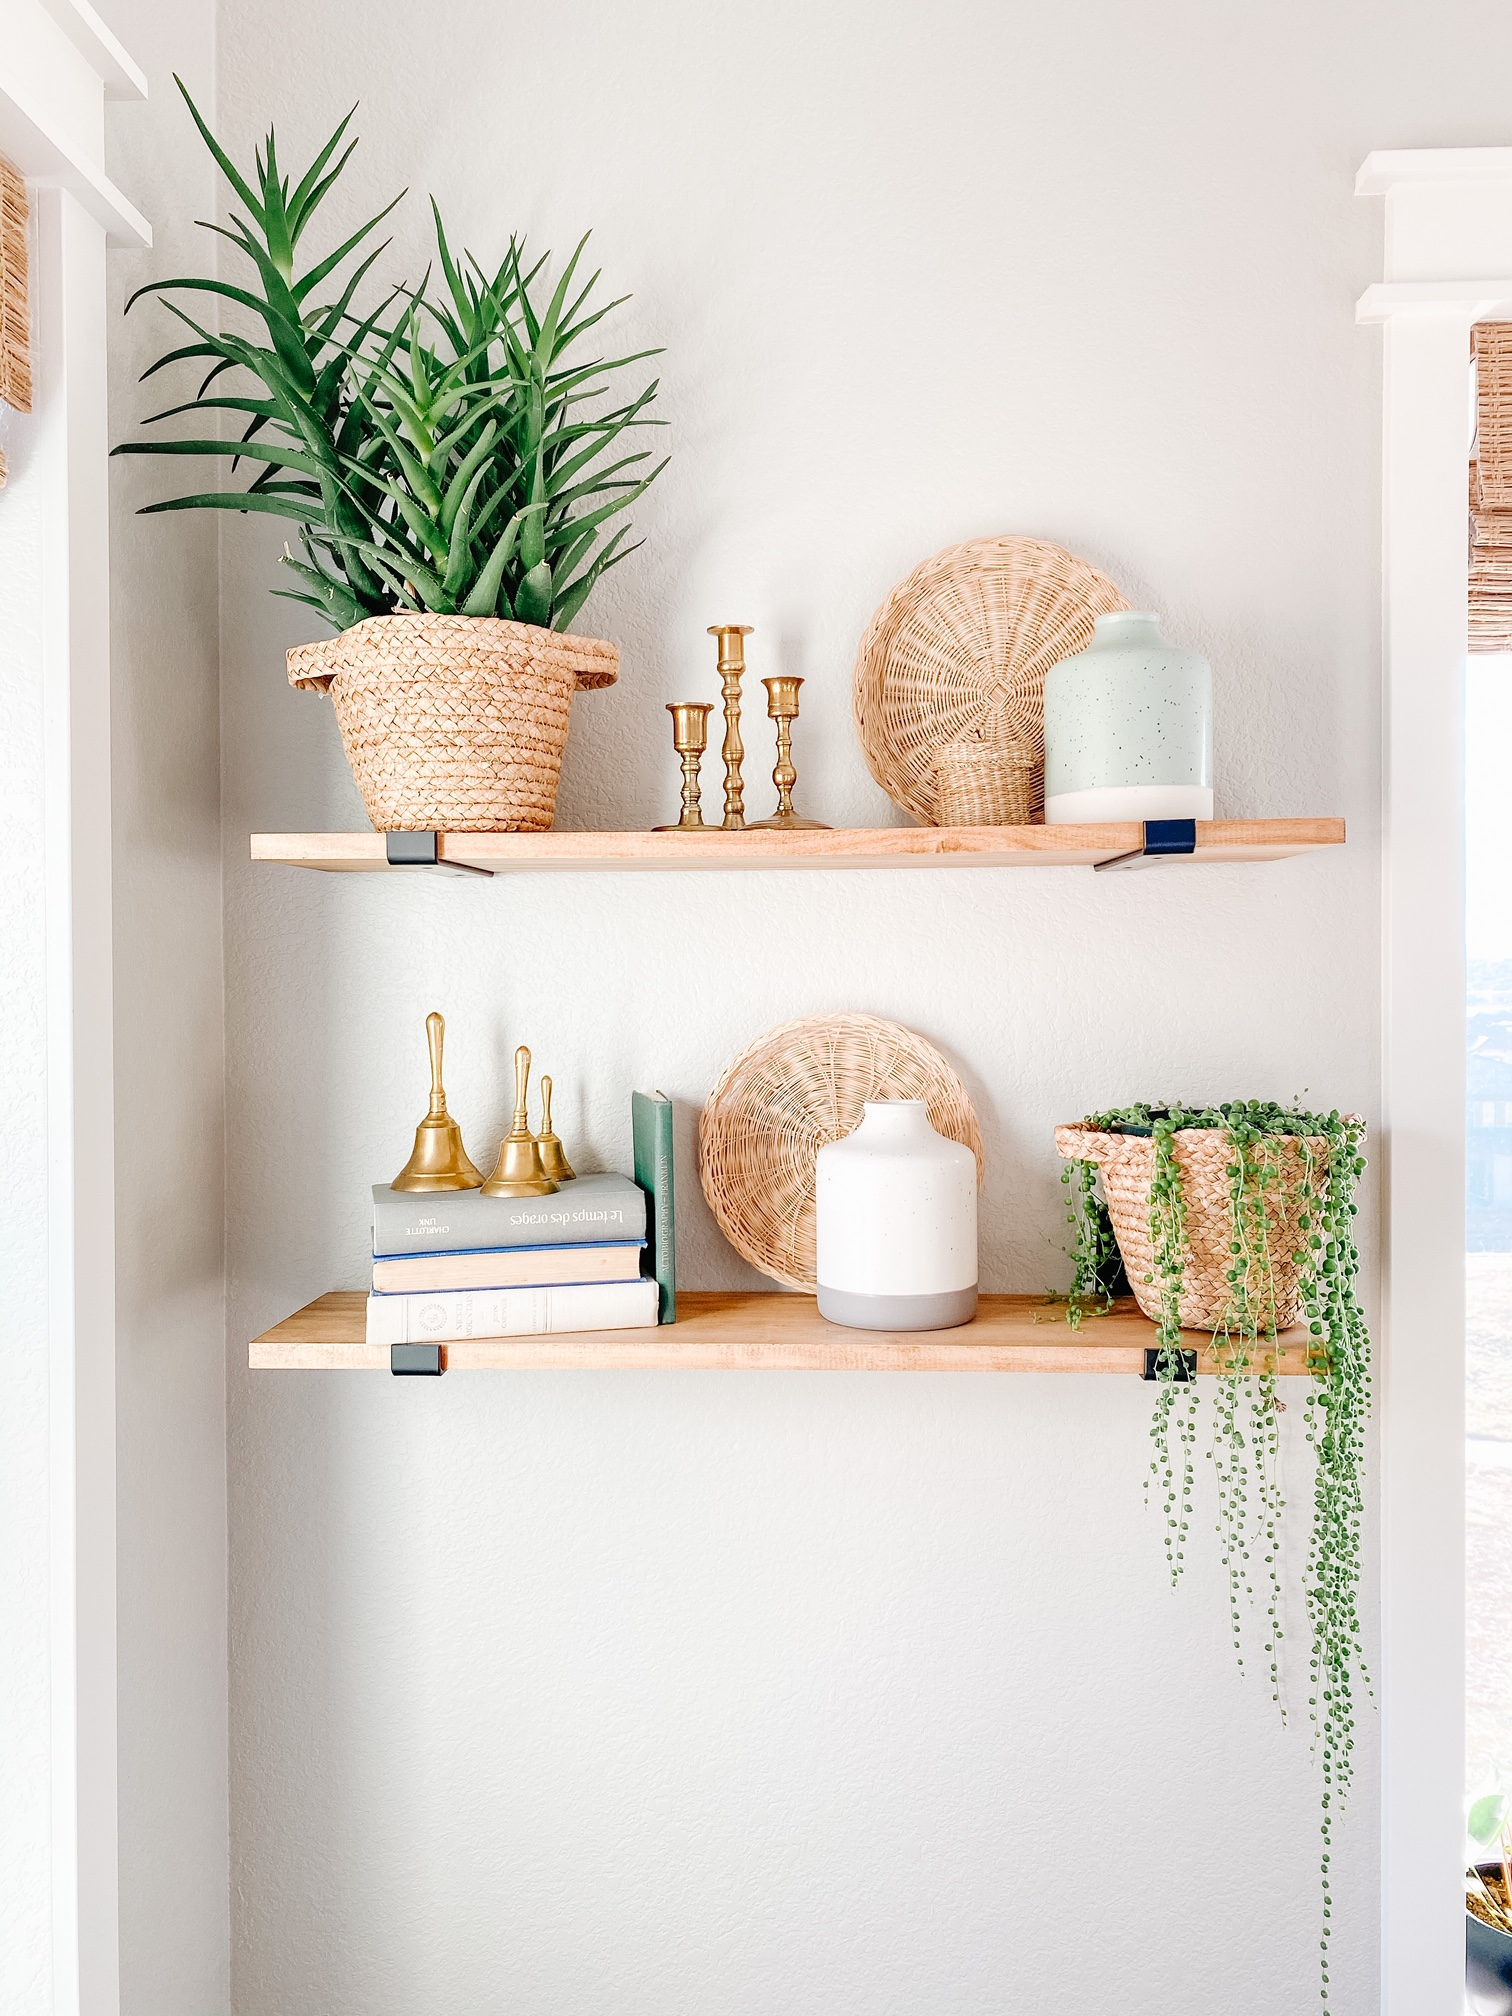 home decor styled shelves in a farmhouse or boho style